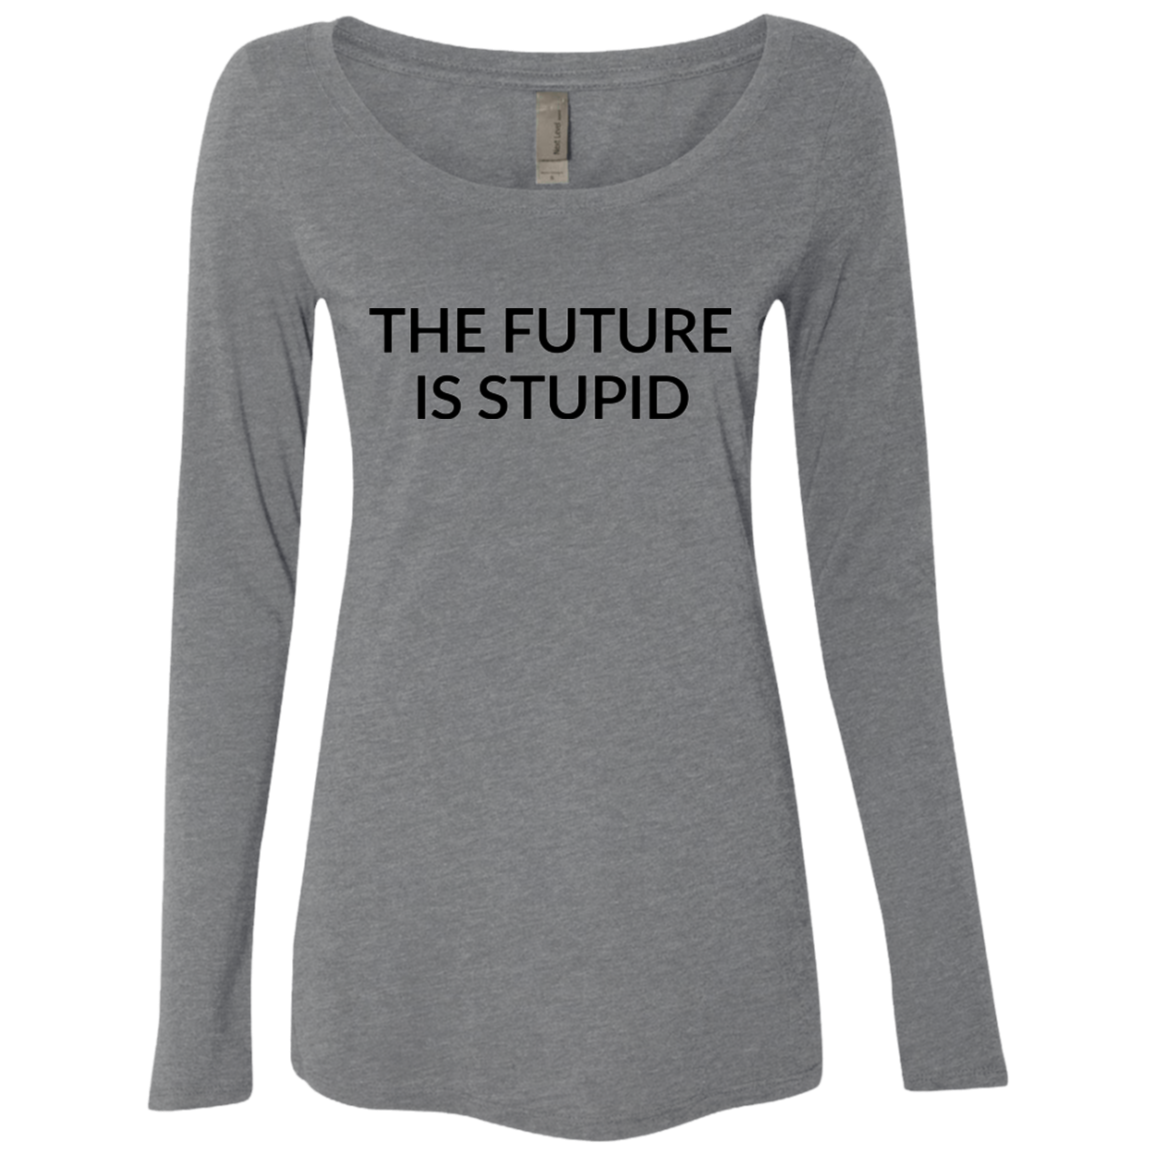 The Future is Stupid Women's Long Sleeve Tee